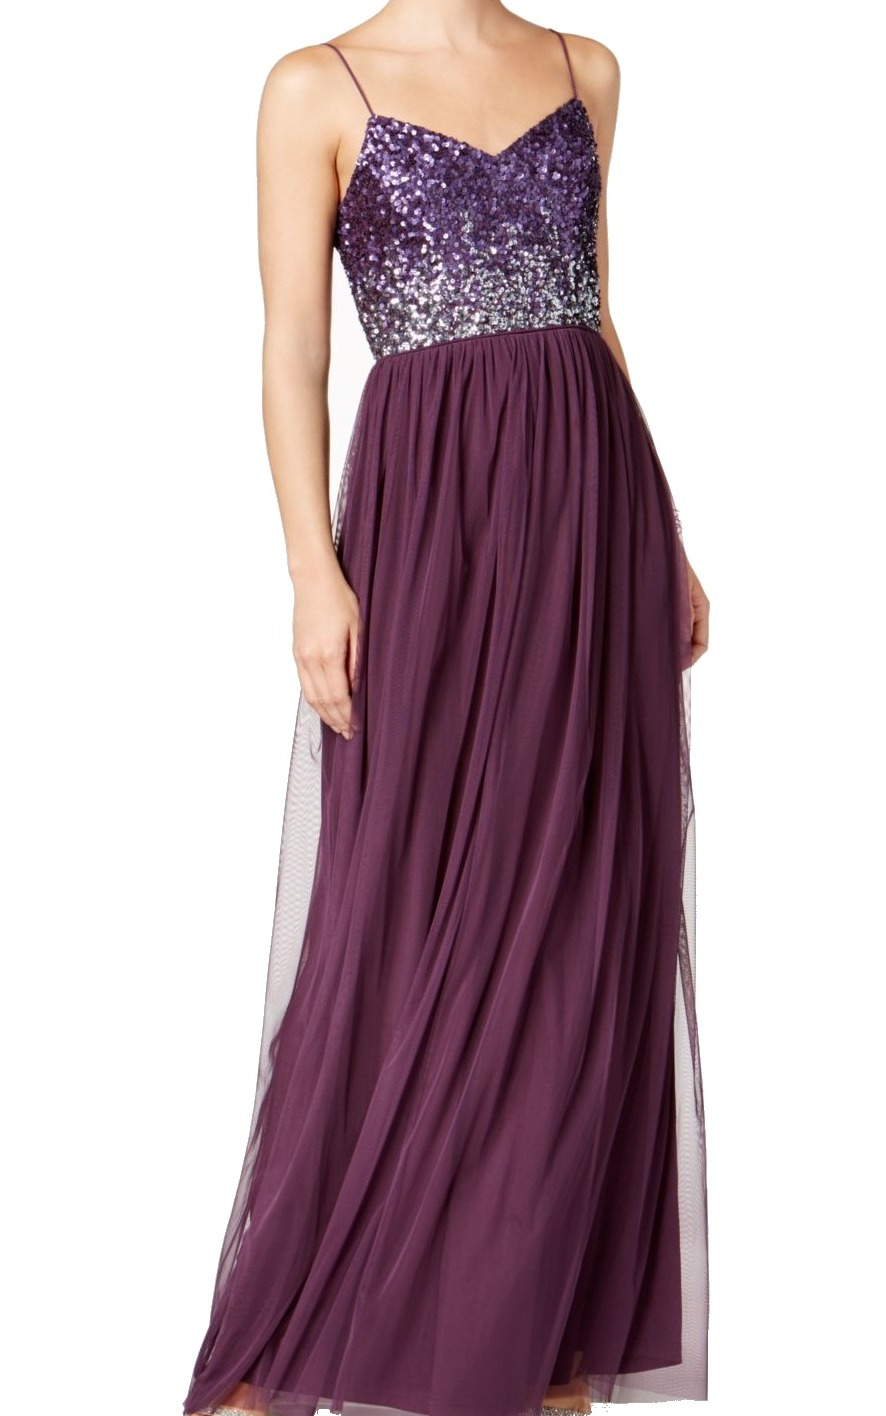 5027358691d Adrianna Papell Women s Sequin Embellished Gown Dress